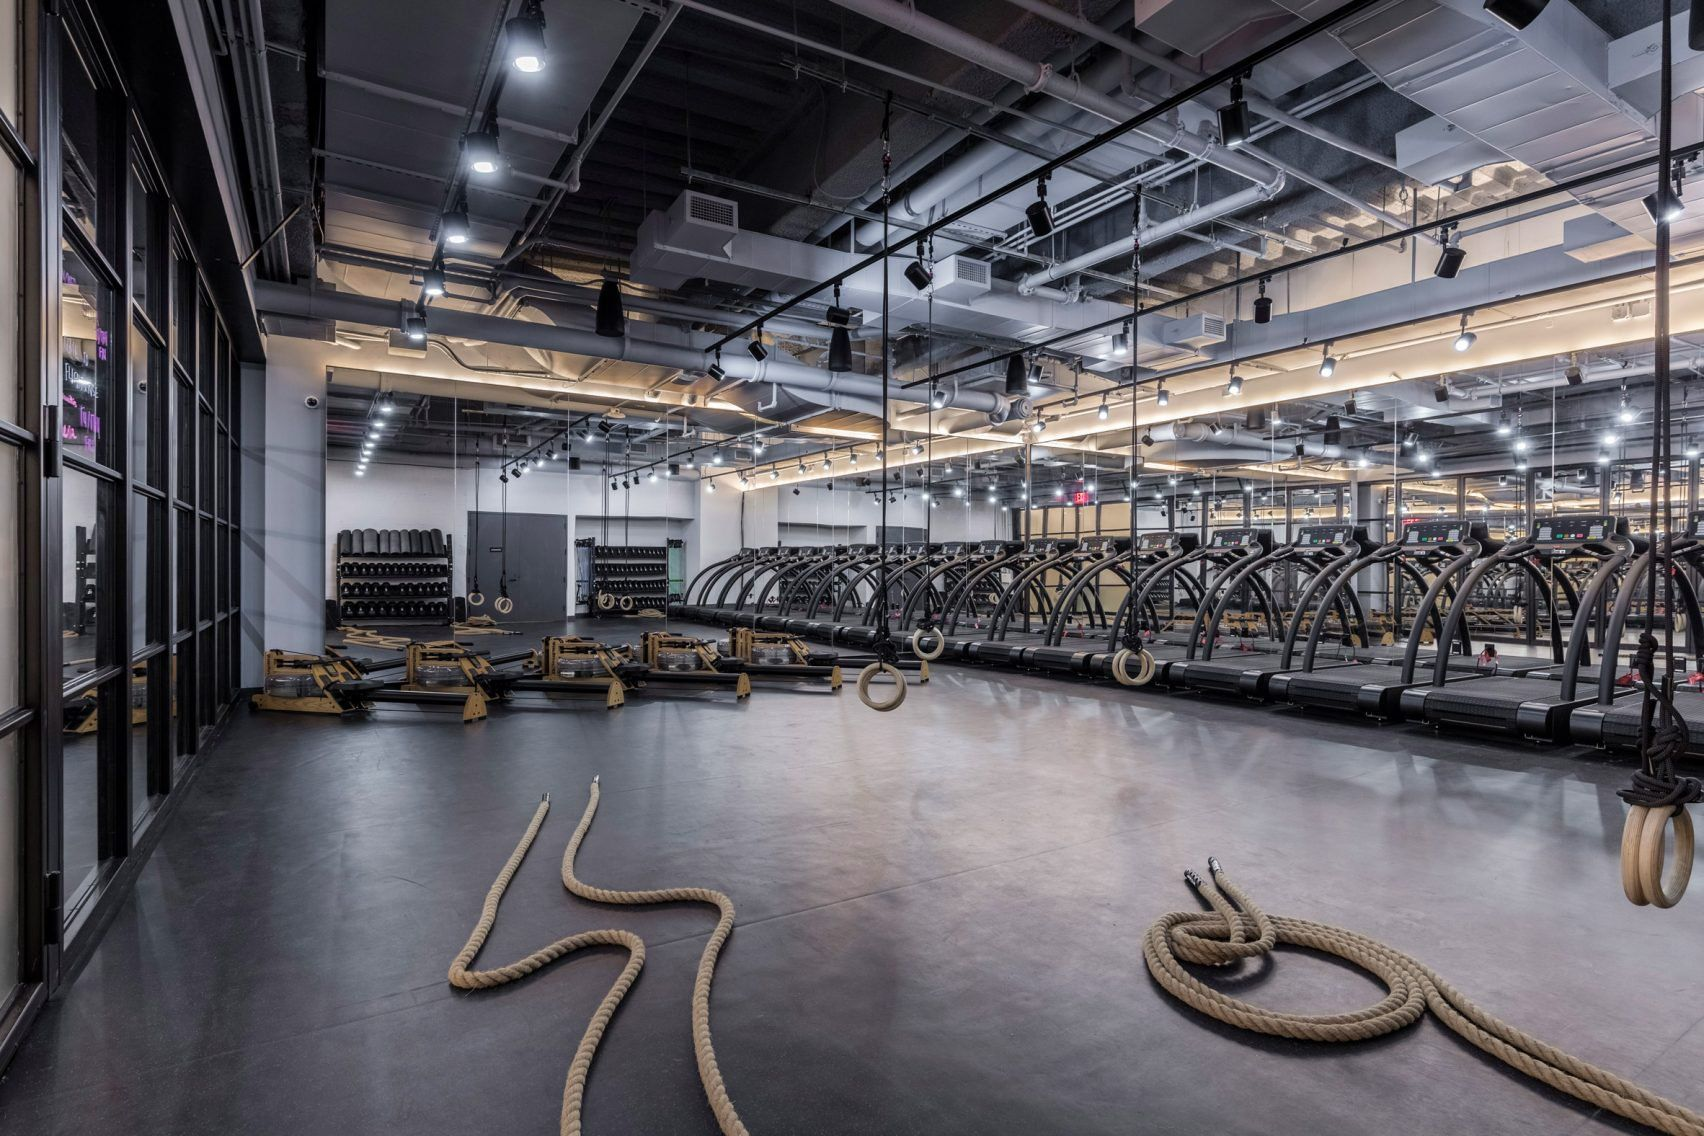 Wework S First Gym Is Pretty Fancy Wellness Club Fitness Boutique Gym Interior